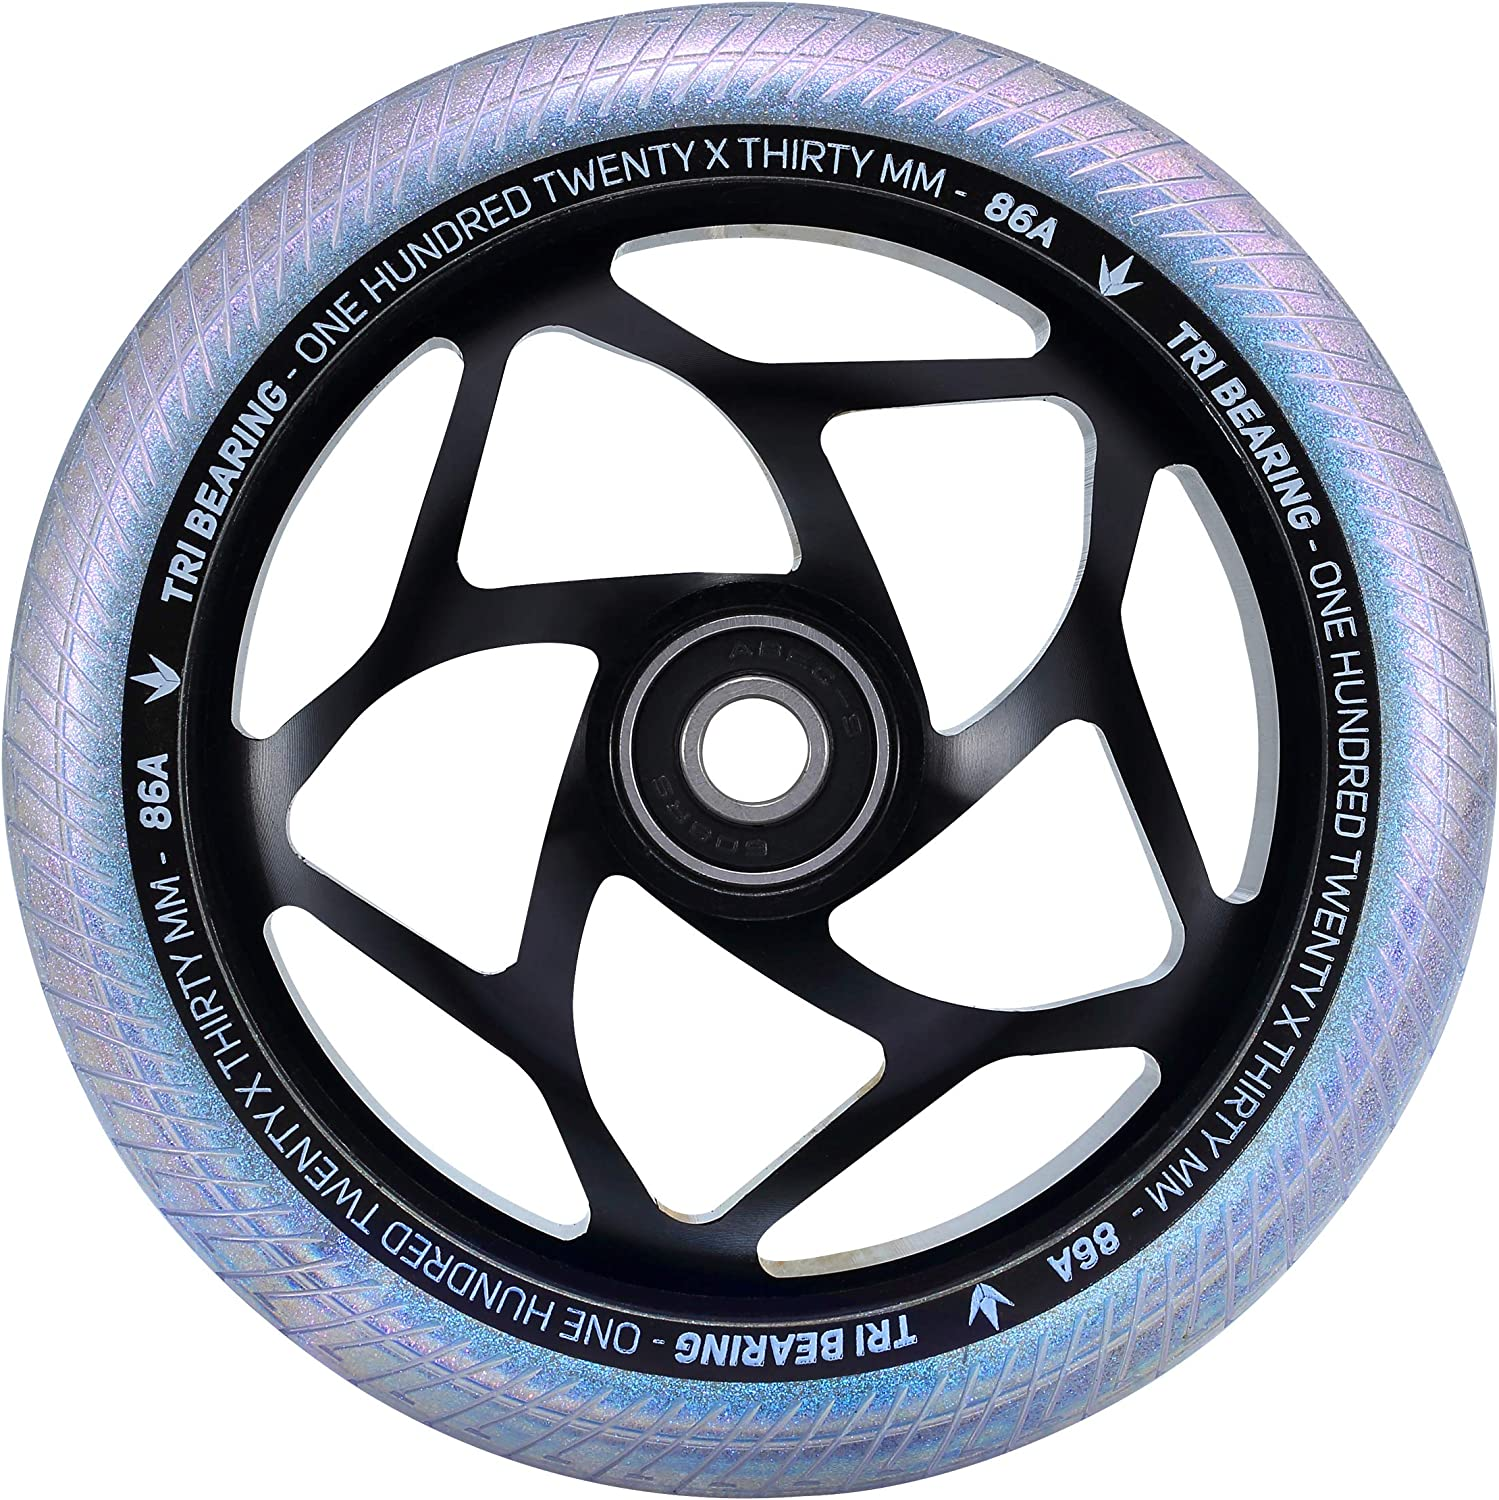 Envy Blunt 120mm x 30mm Tri Bearing Scooter Wheel for 30mm Wide Fitting Forks Black//Galaxy, 120mmx30mm